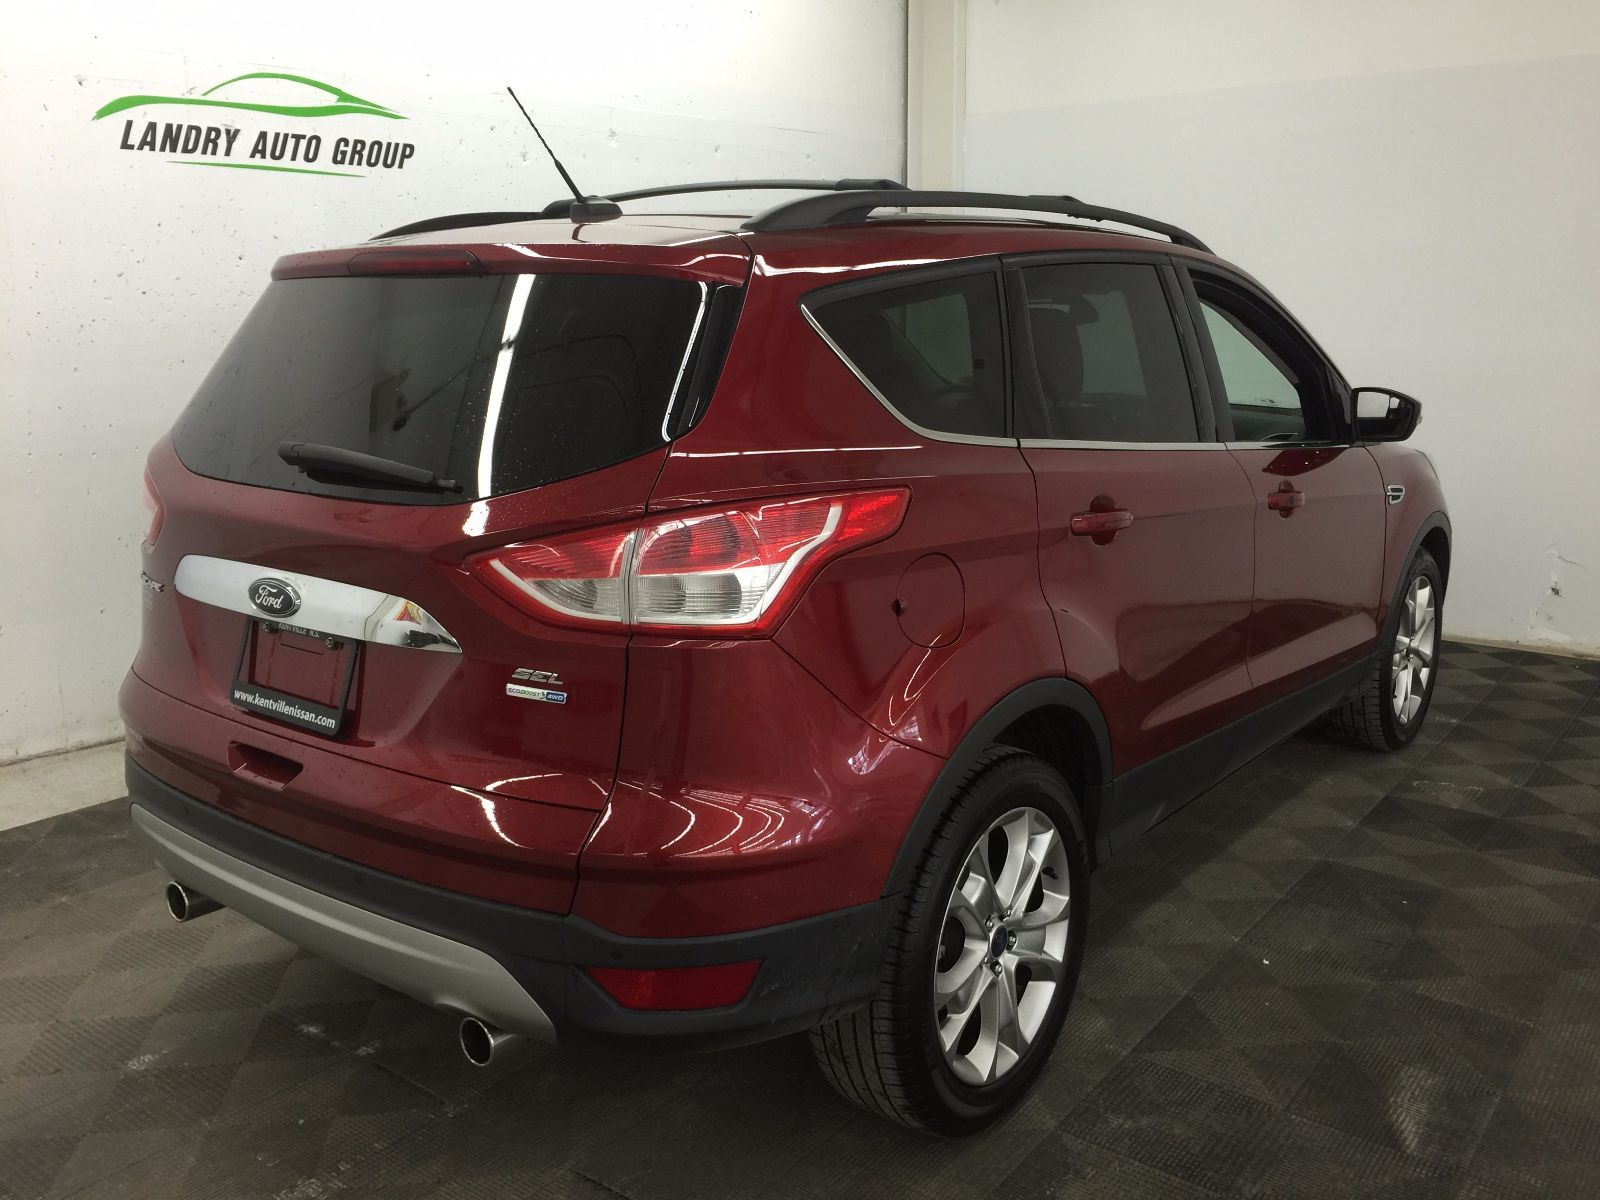 used 2013 ford escape sel in berwick used inventory berwick used car centre in berwick nova. Black Bedroom Furniture Sets. Home Design Ideas